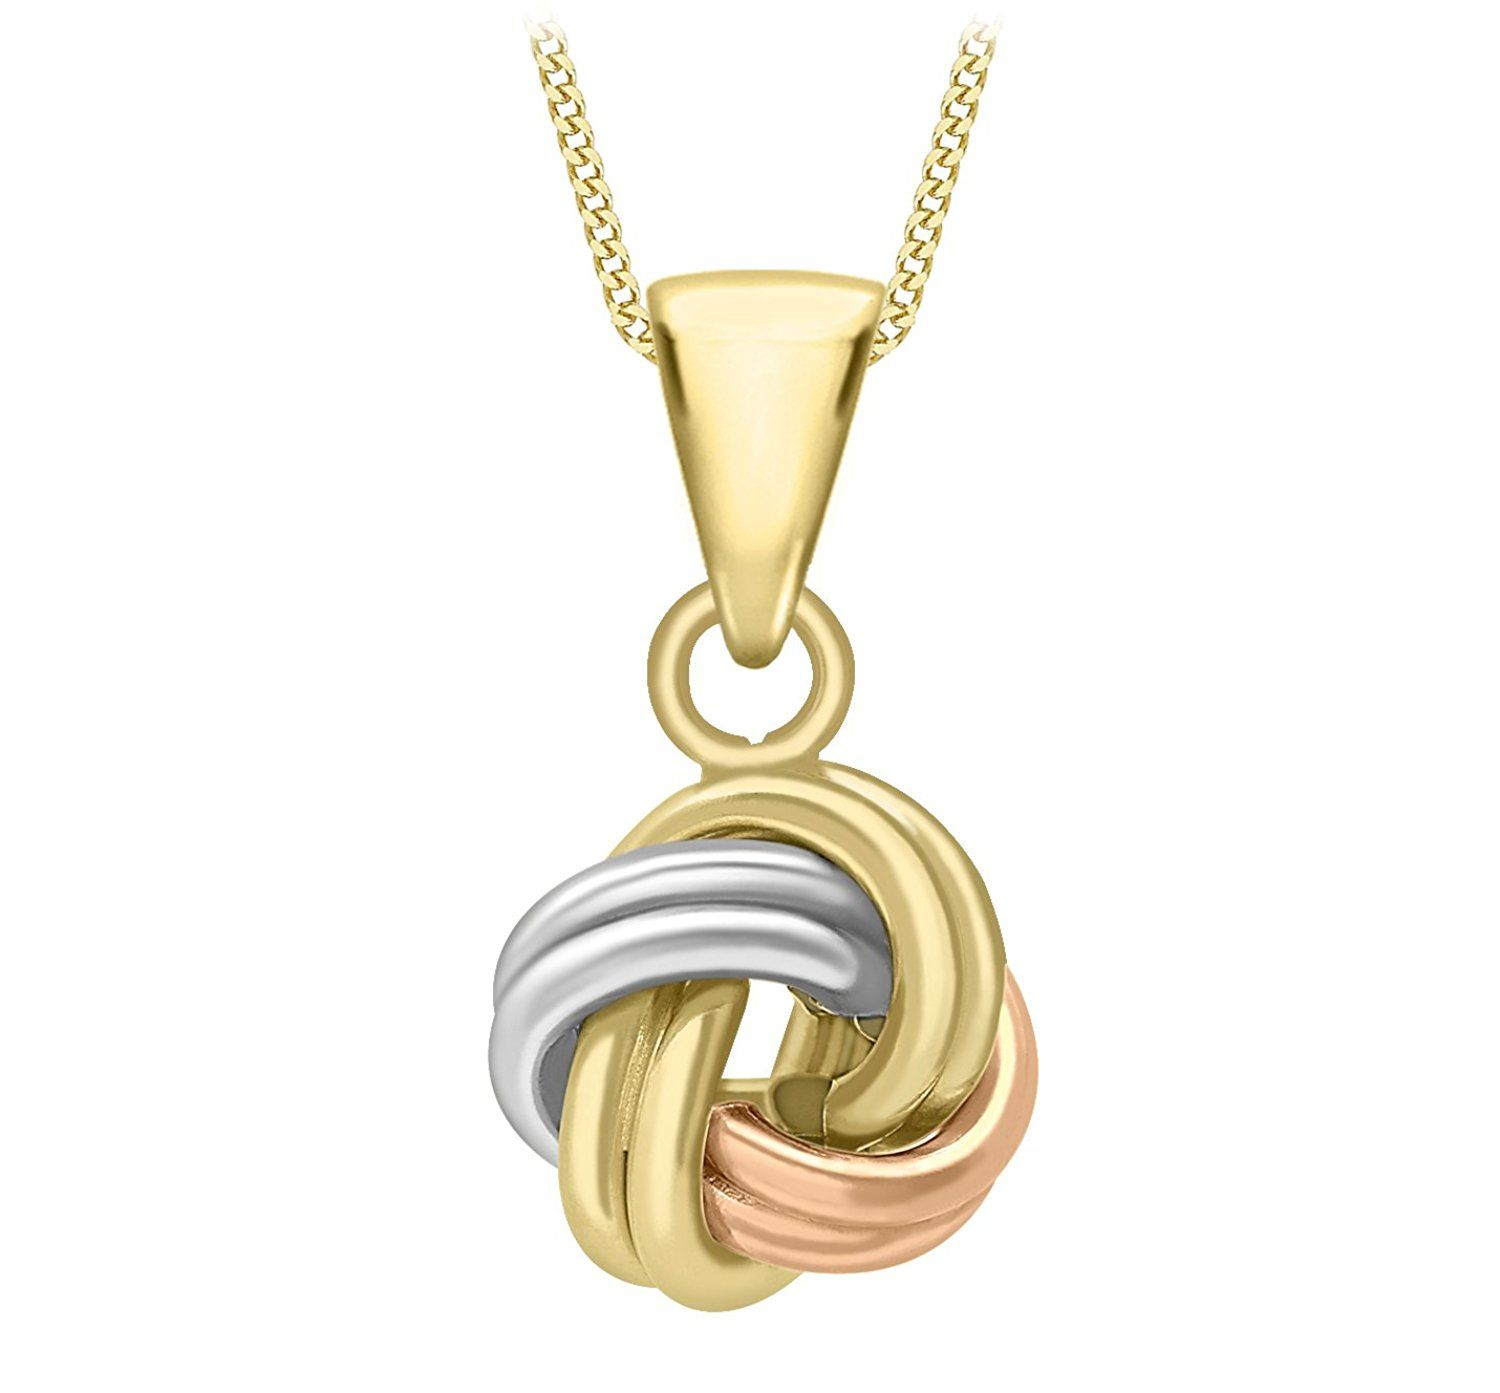 Carissima gold ct colour gold with polished tube knot pendant on